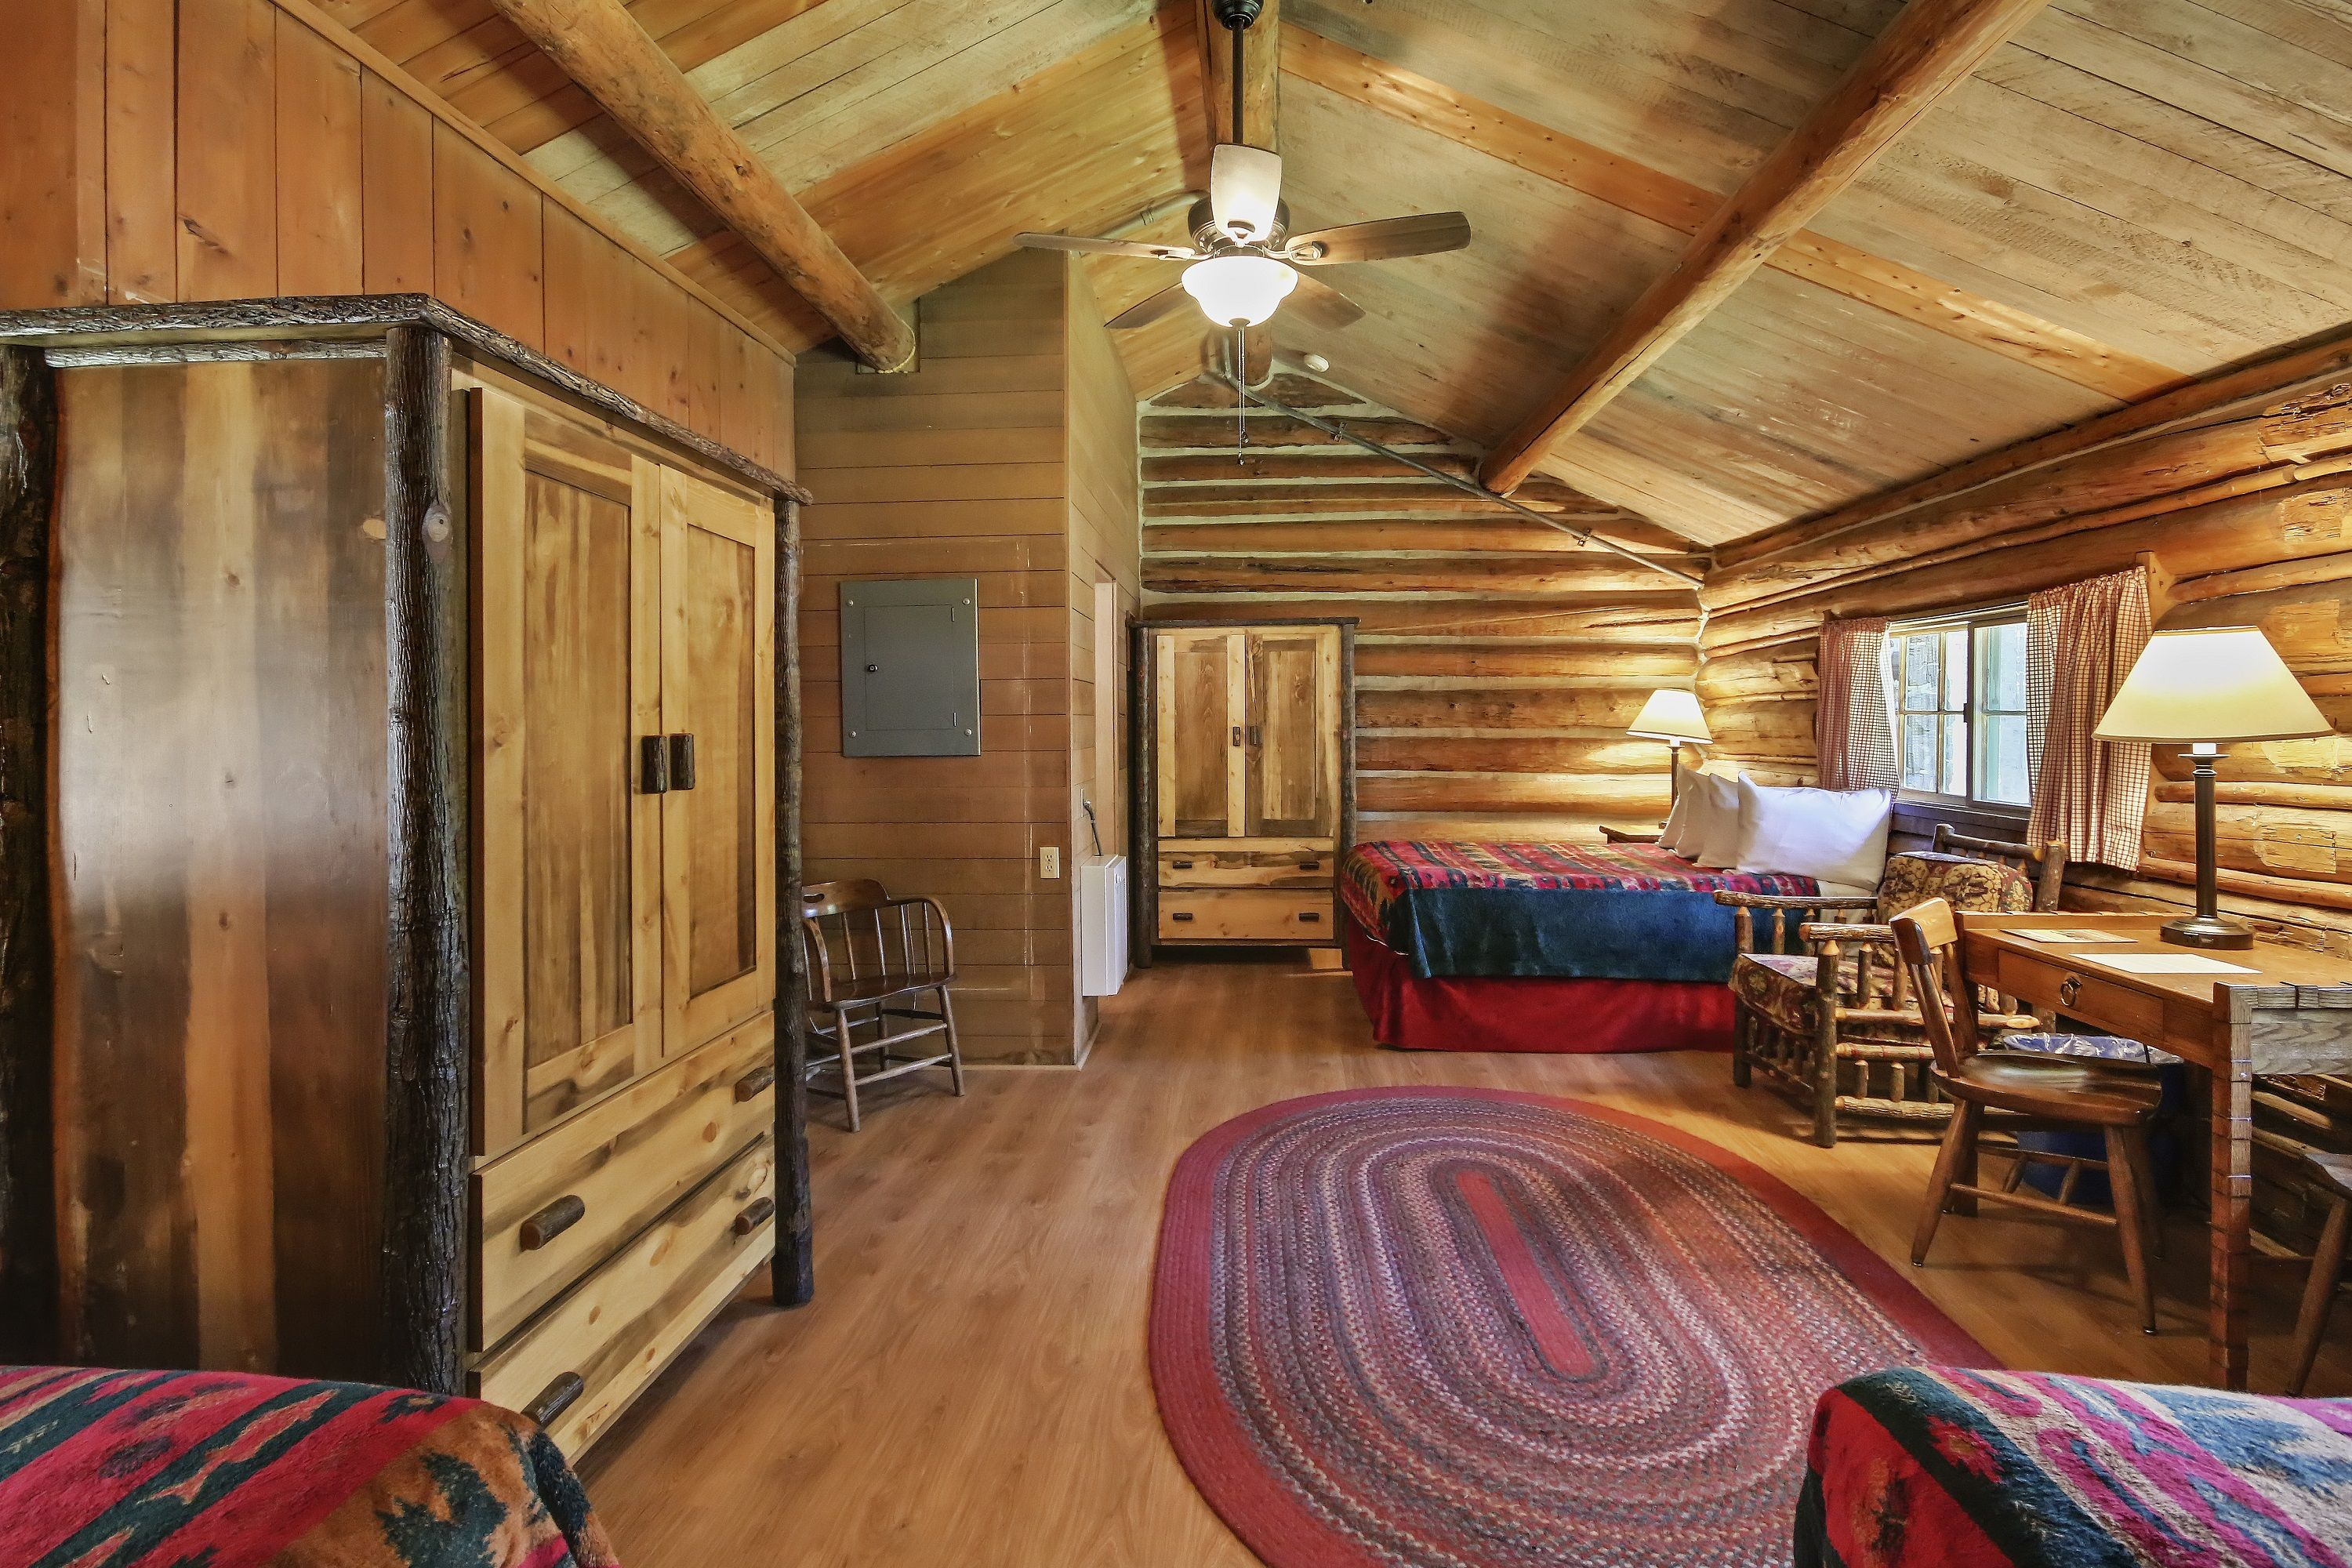 hole park time jackson of new best rentals yellowstone lodging rental rving at cabins full cabin national